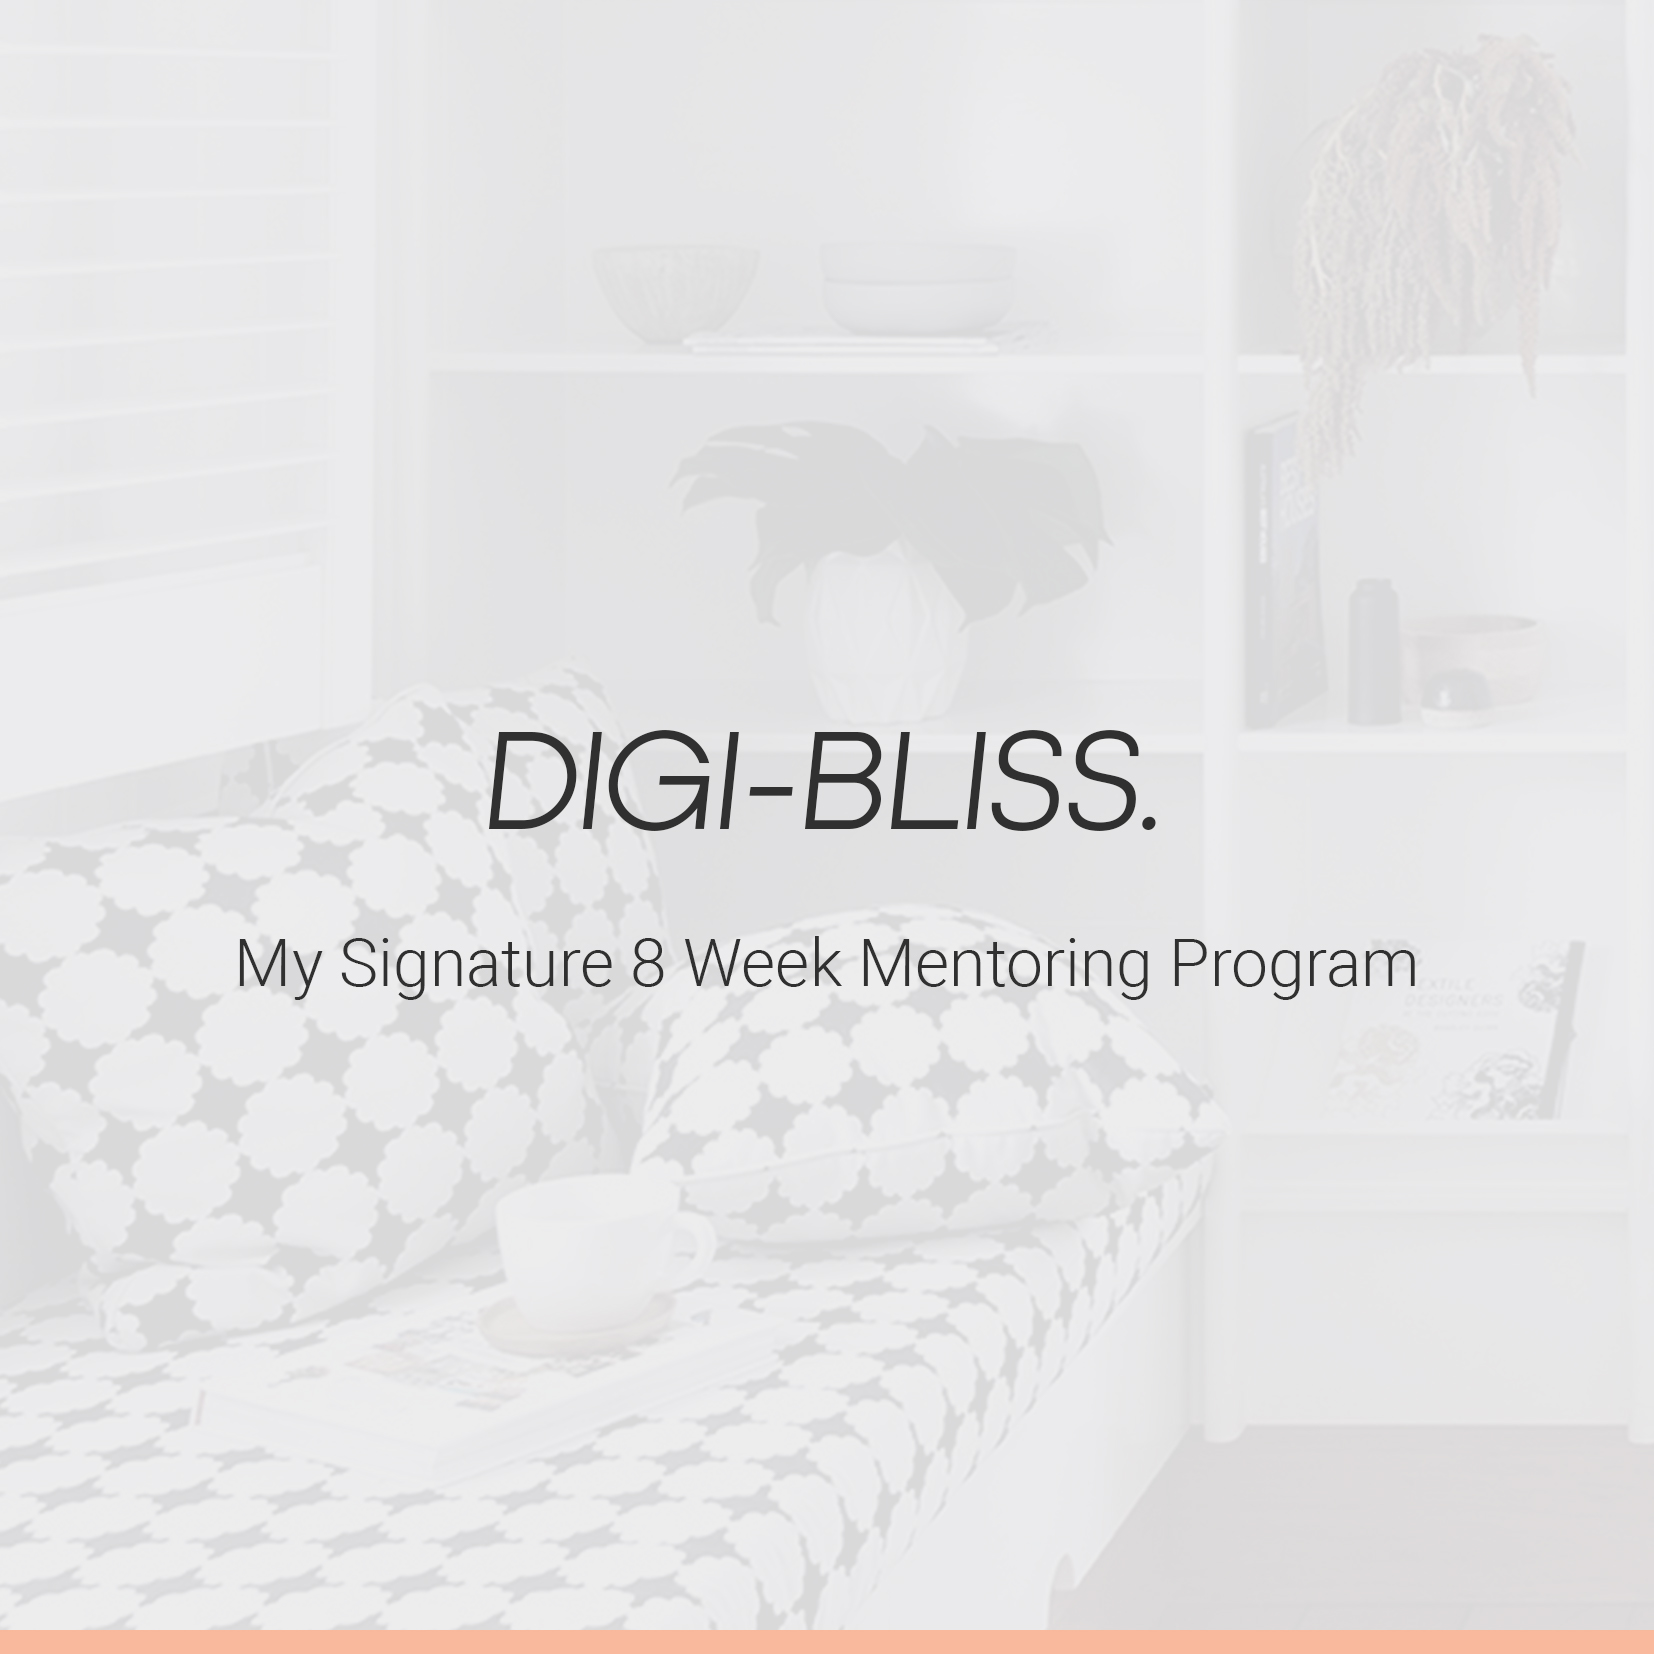 Digi-Bliss / My Signature 8 Week Mentoring Program